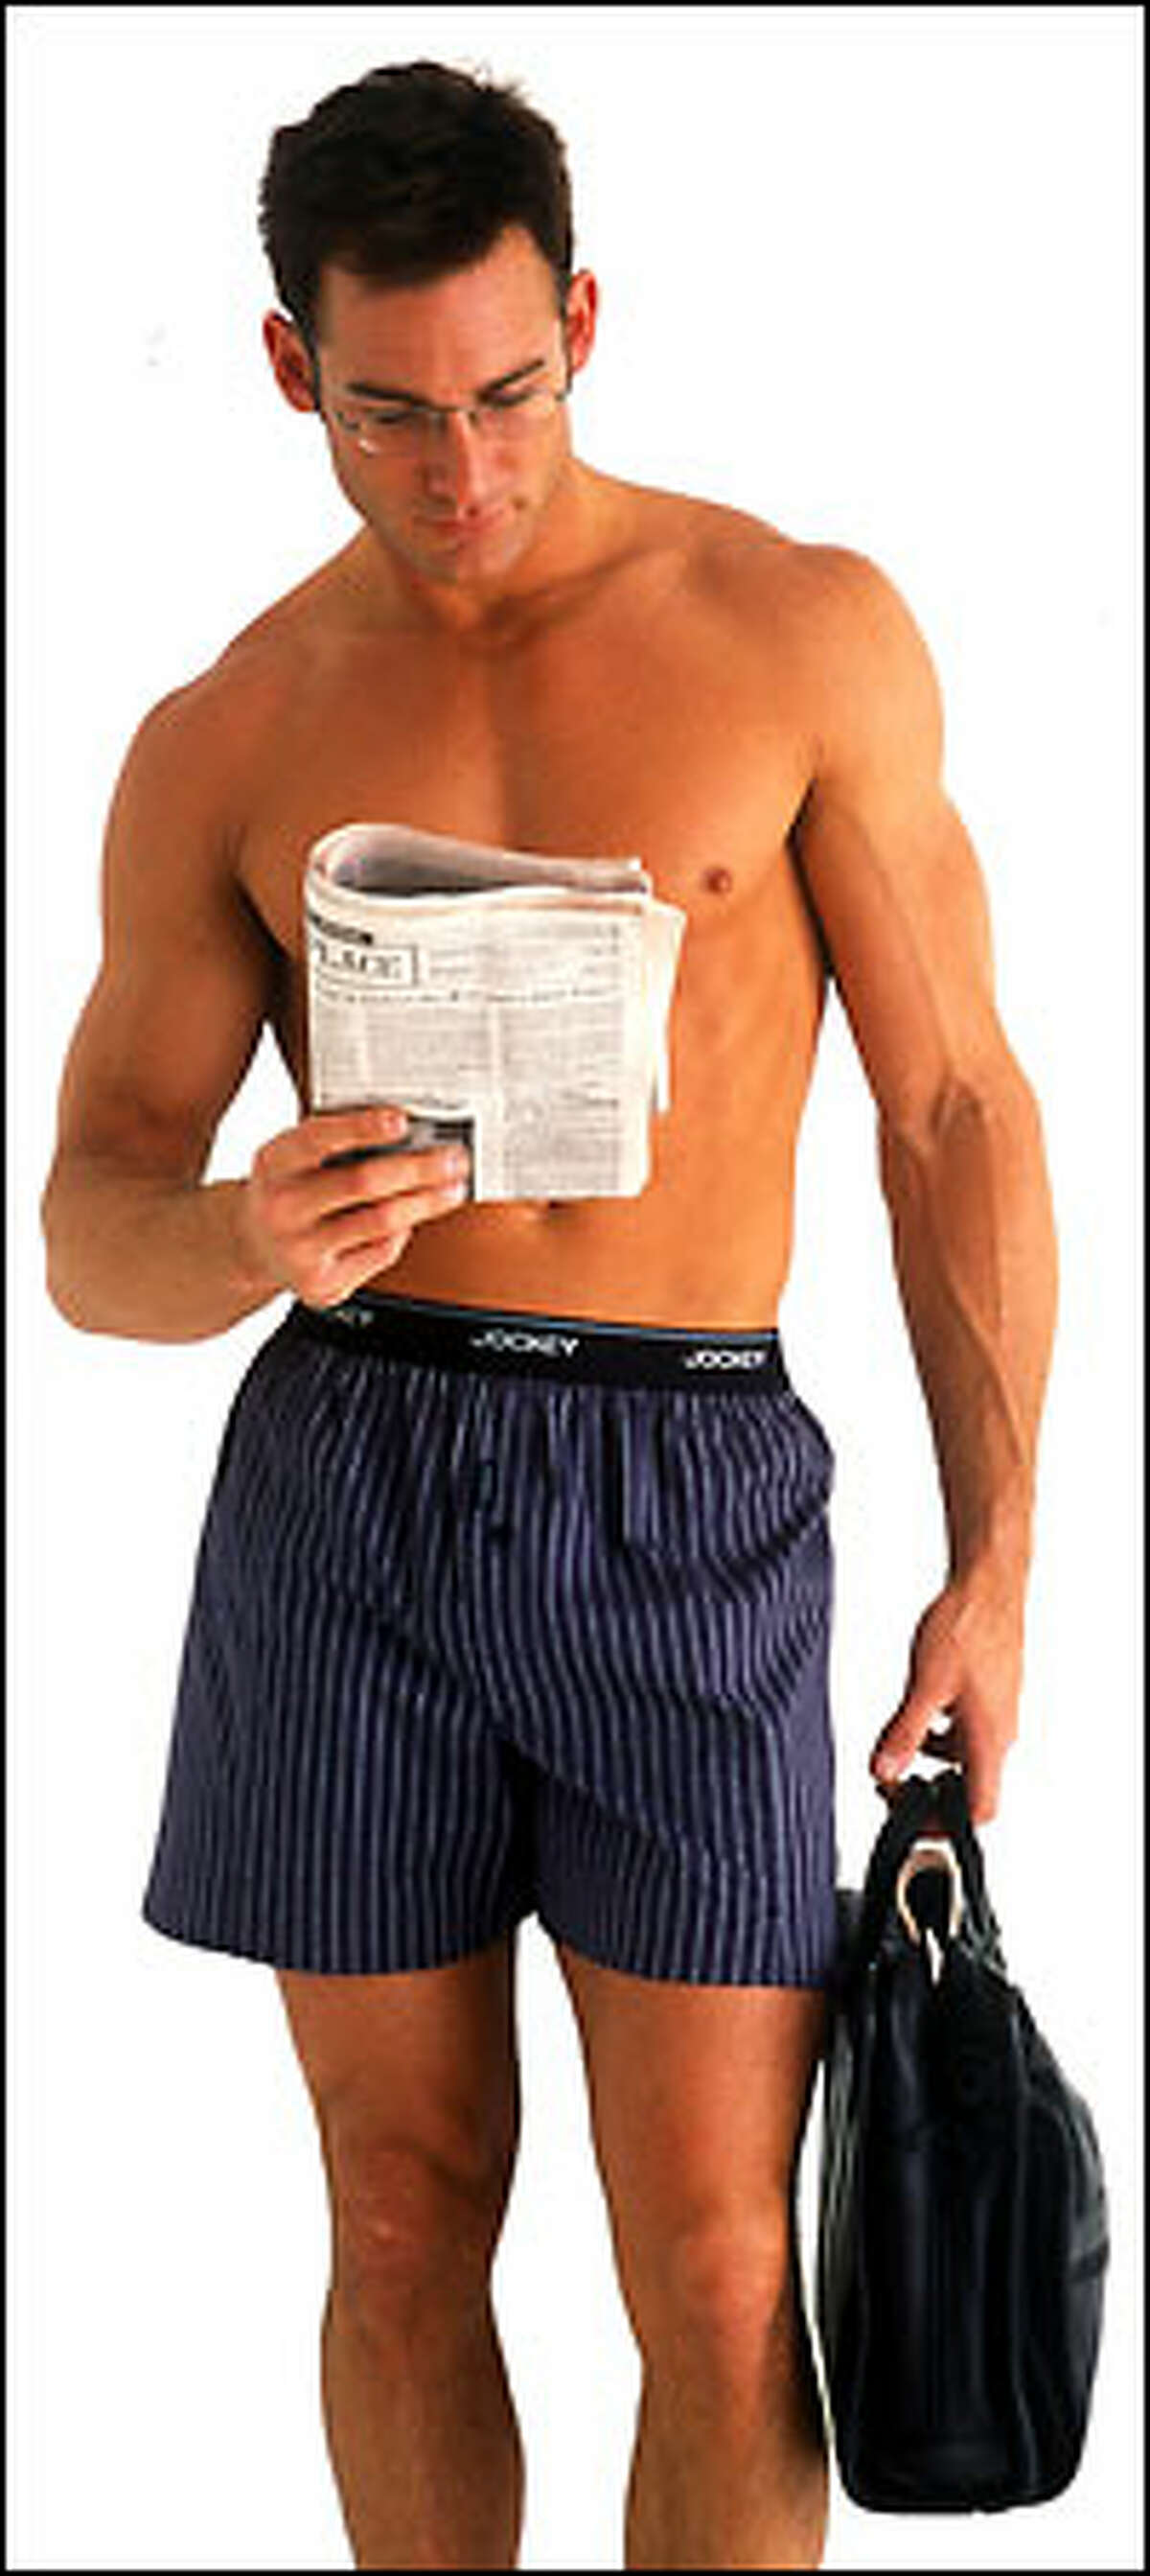 Casual Friday? Not quite, but more men are wearing boxers for comfort and fashion. Shown here is Jockey's stretch-woven boxer.